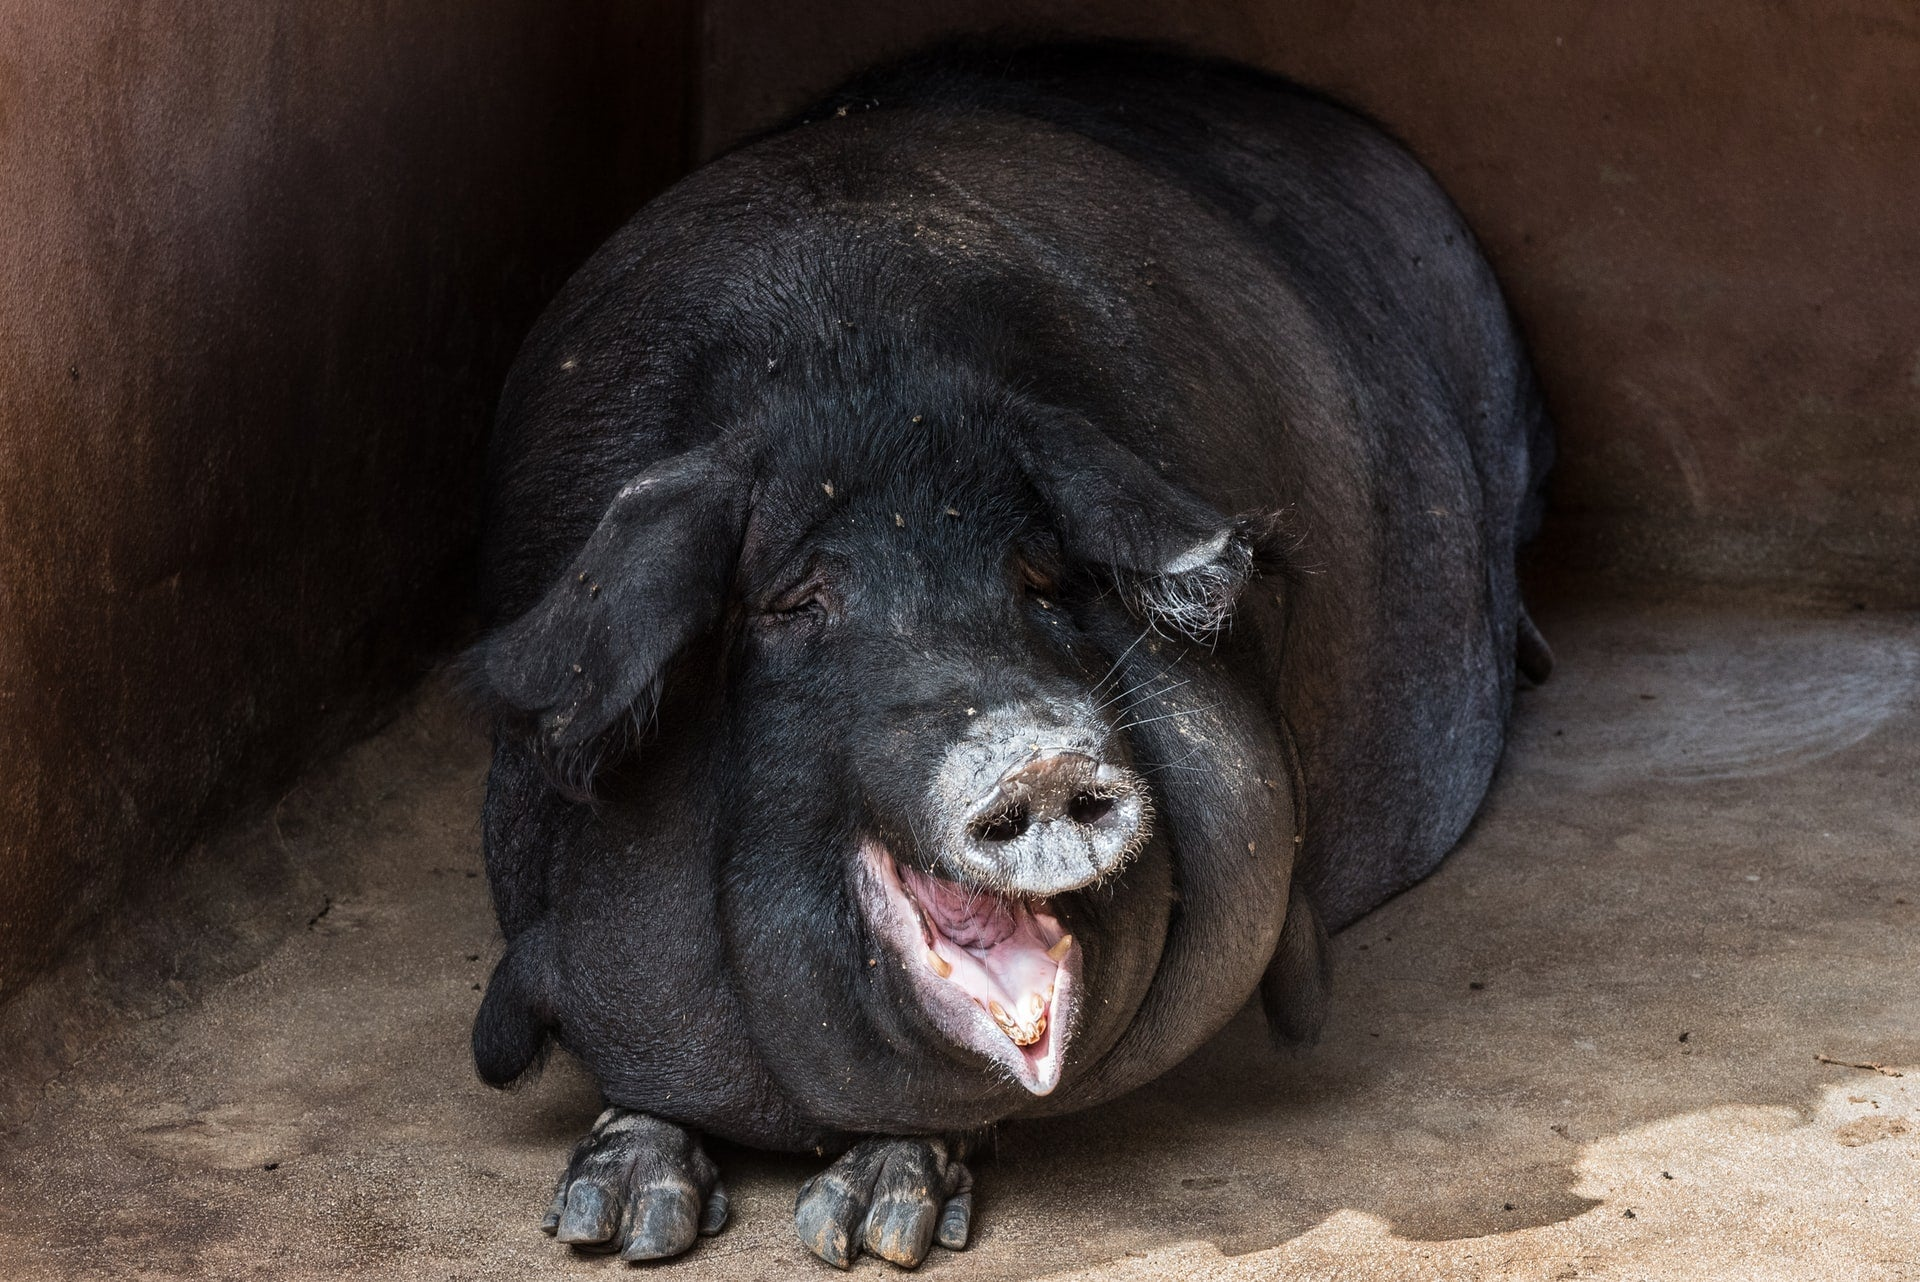 a black pig is smiling